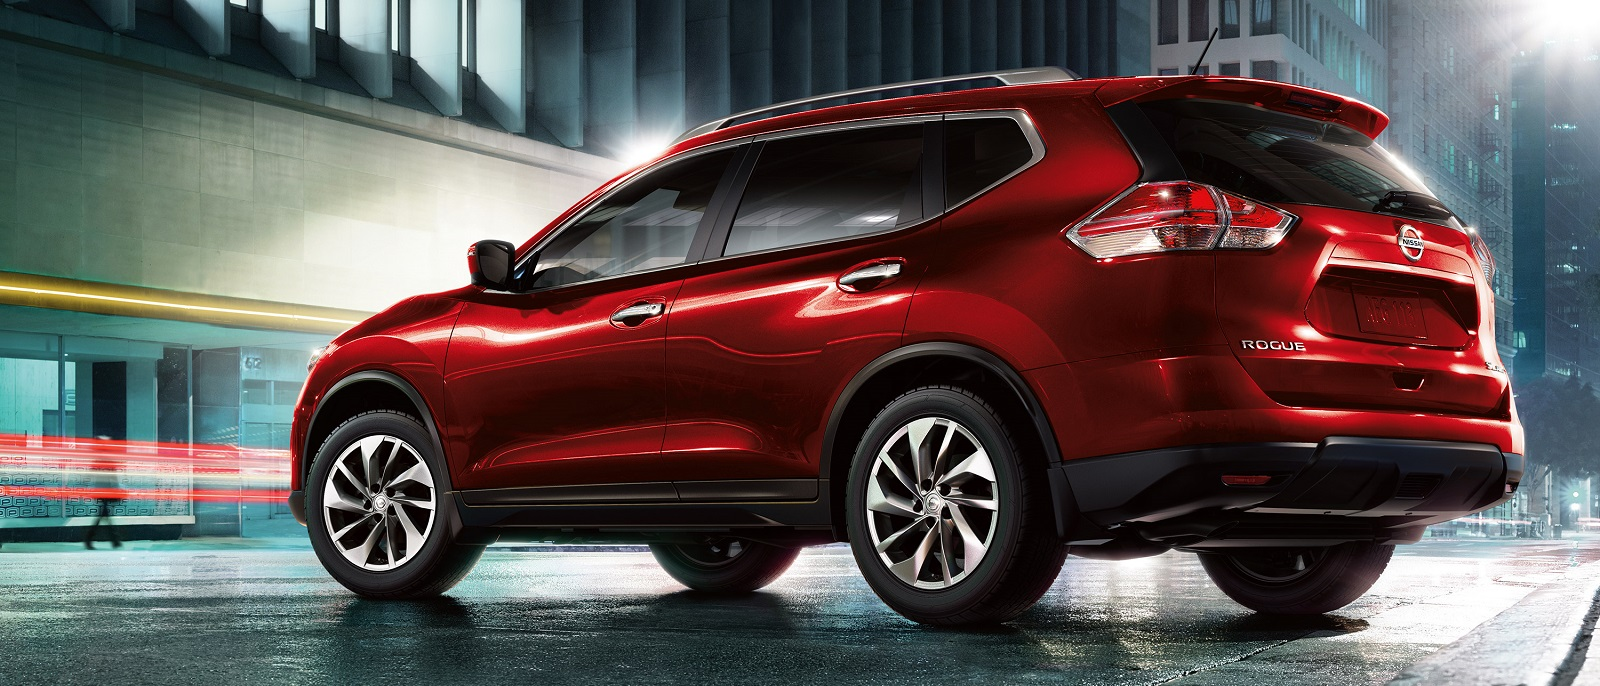 2016-nissan-rogue-side-view-cayenne-red